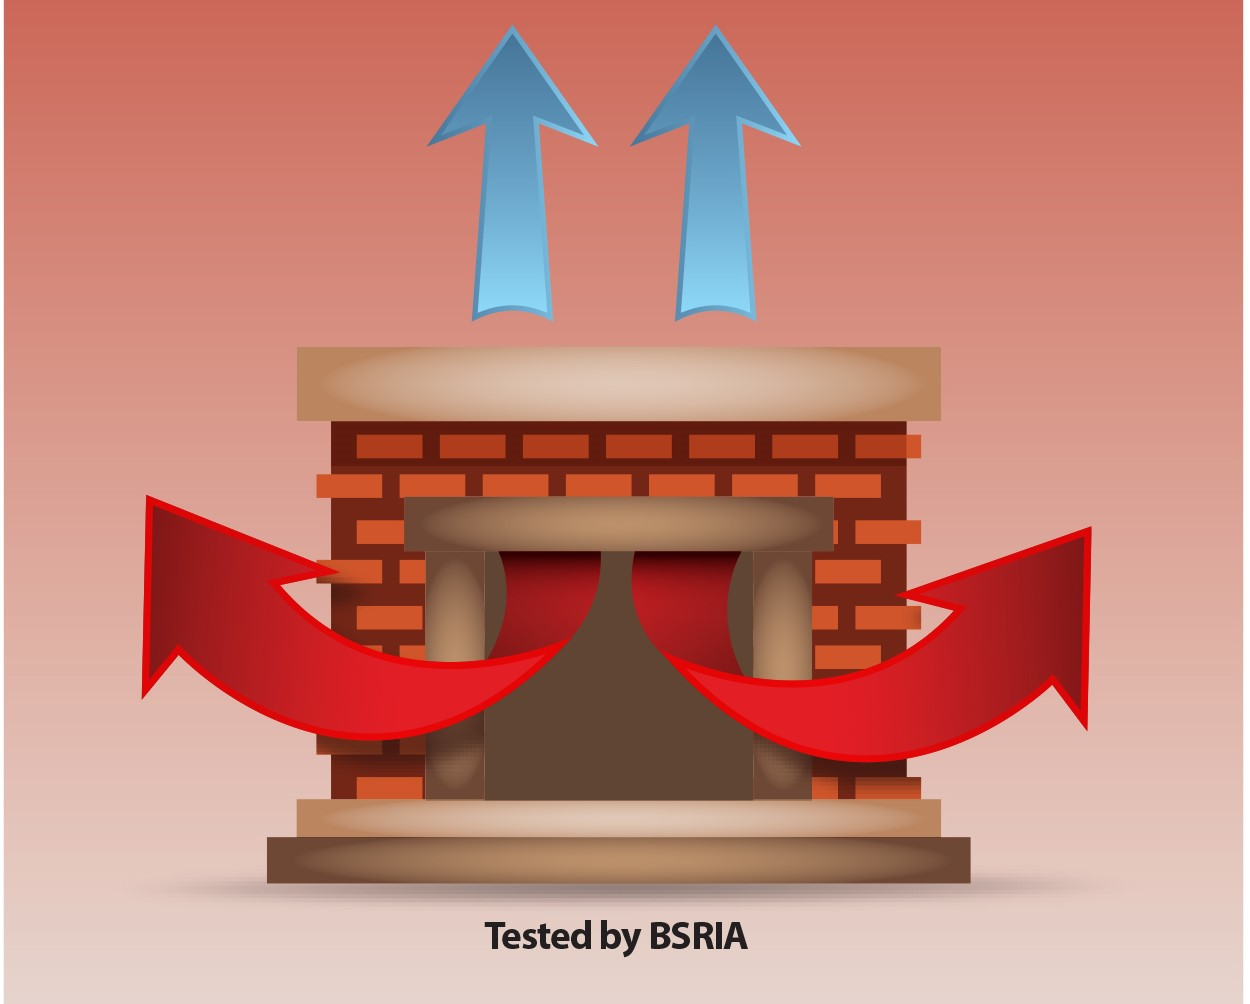 diagram illustrating consequences of blocking the chimney to air flow. Cold air is prevented from sinking down and warm air is prevented from escaping upwards